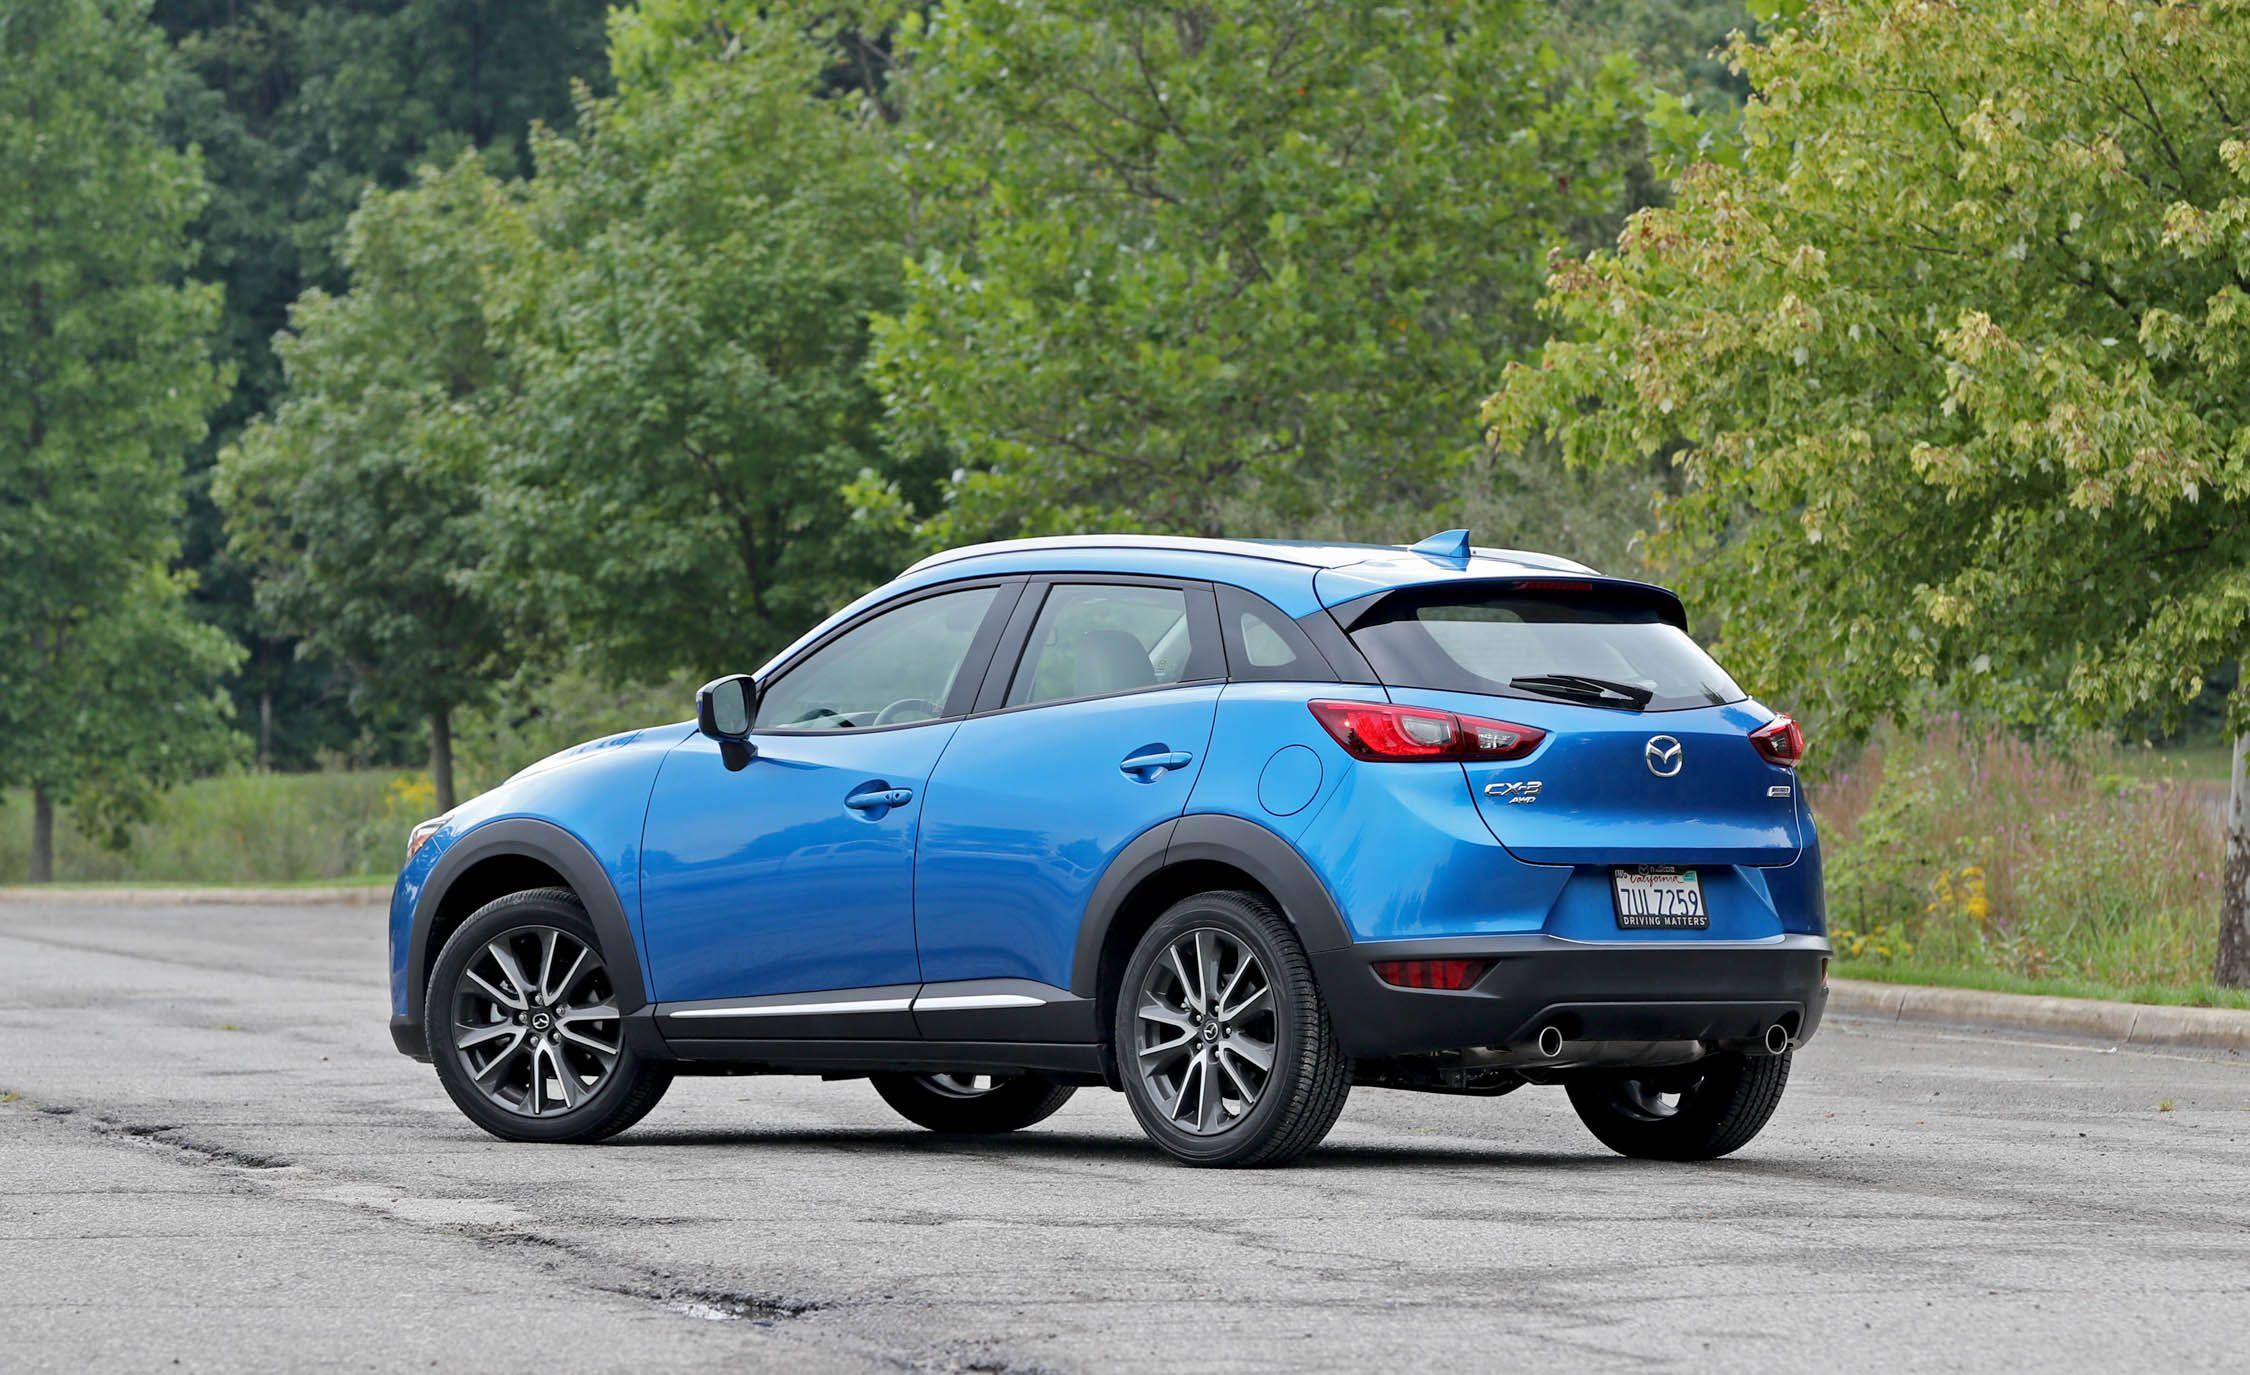 2017 Mazda CX-3 | In-Depth Model Review | Car and Driver